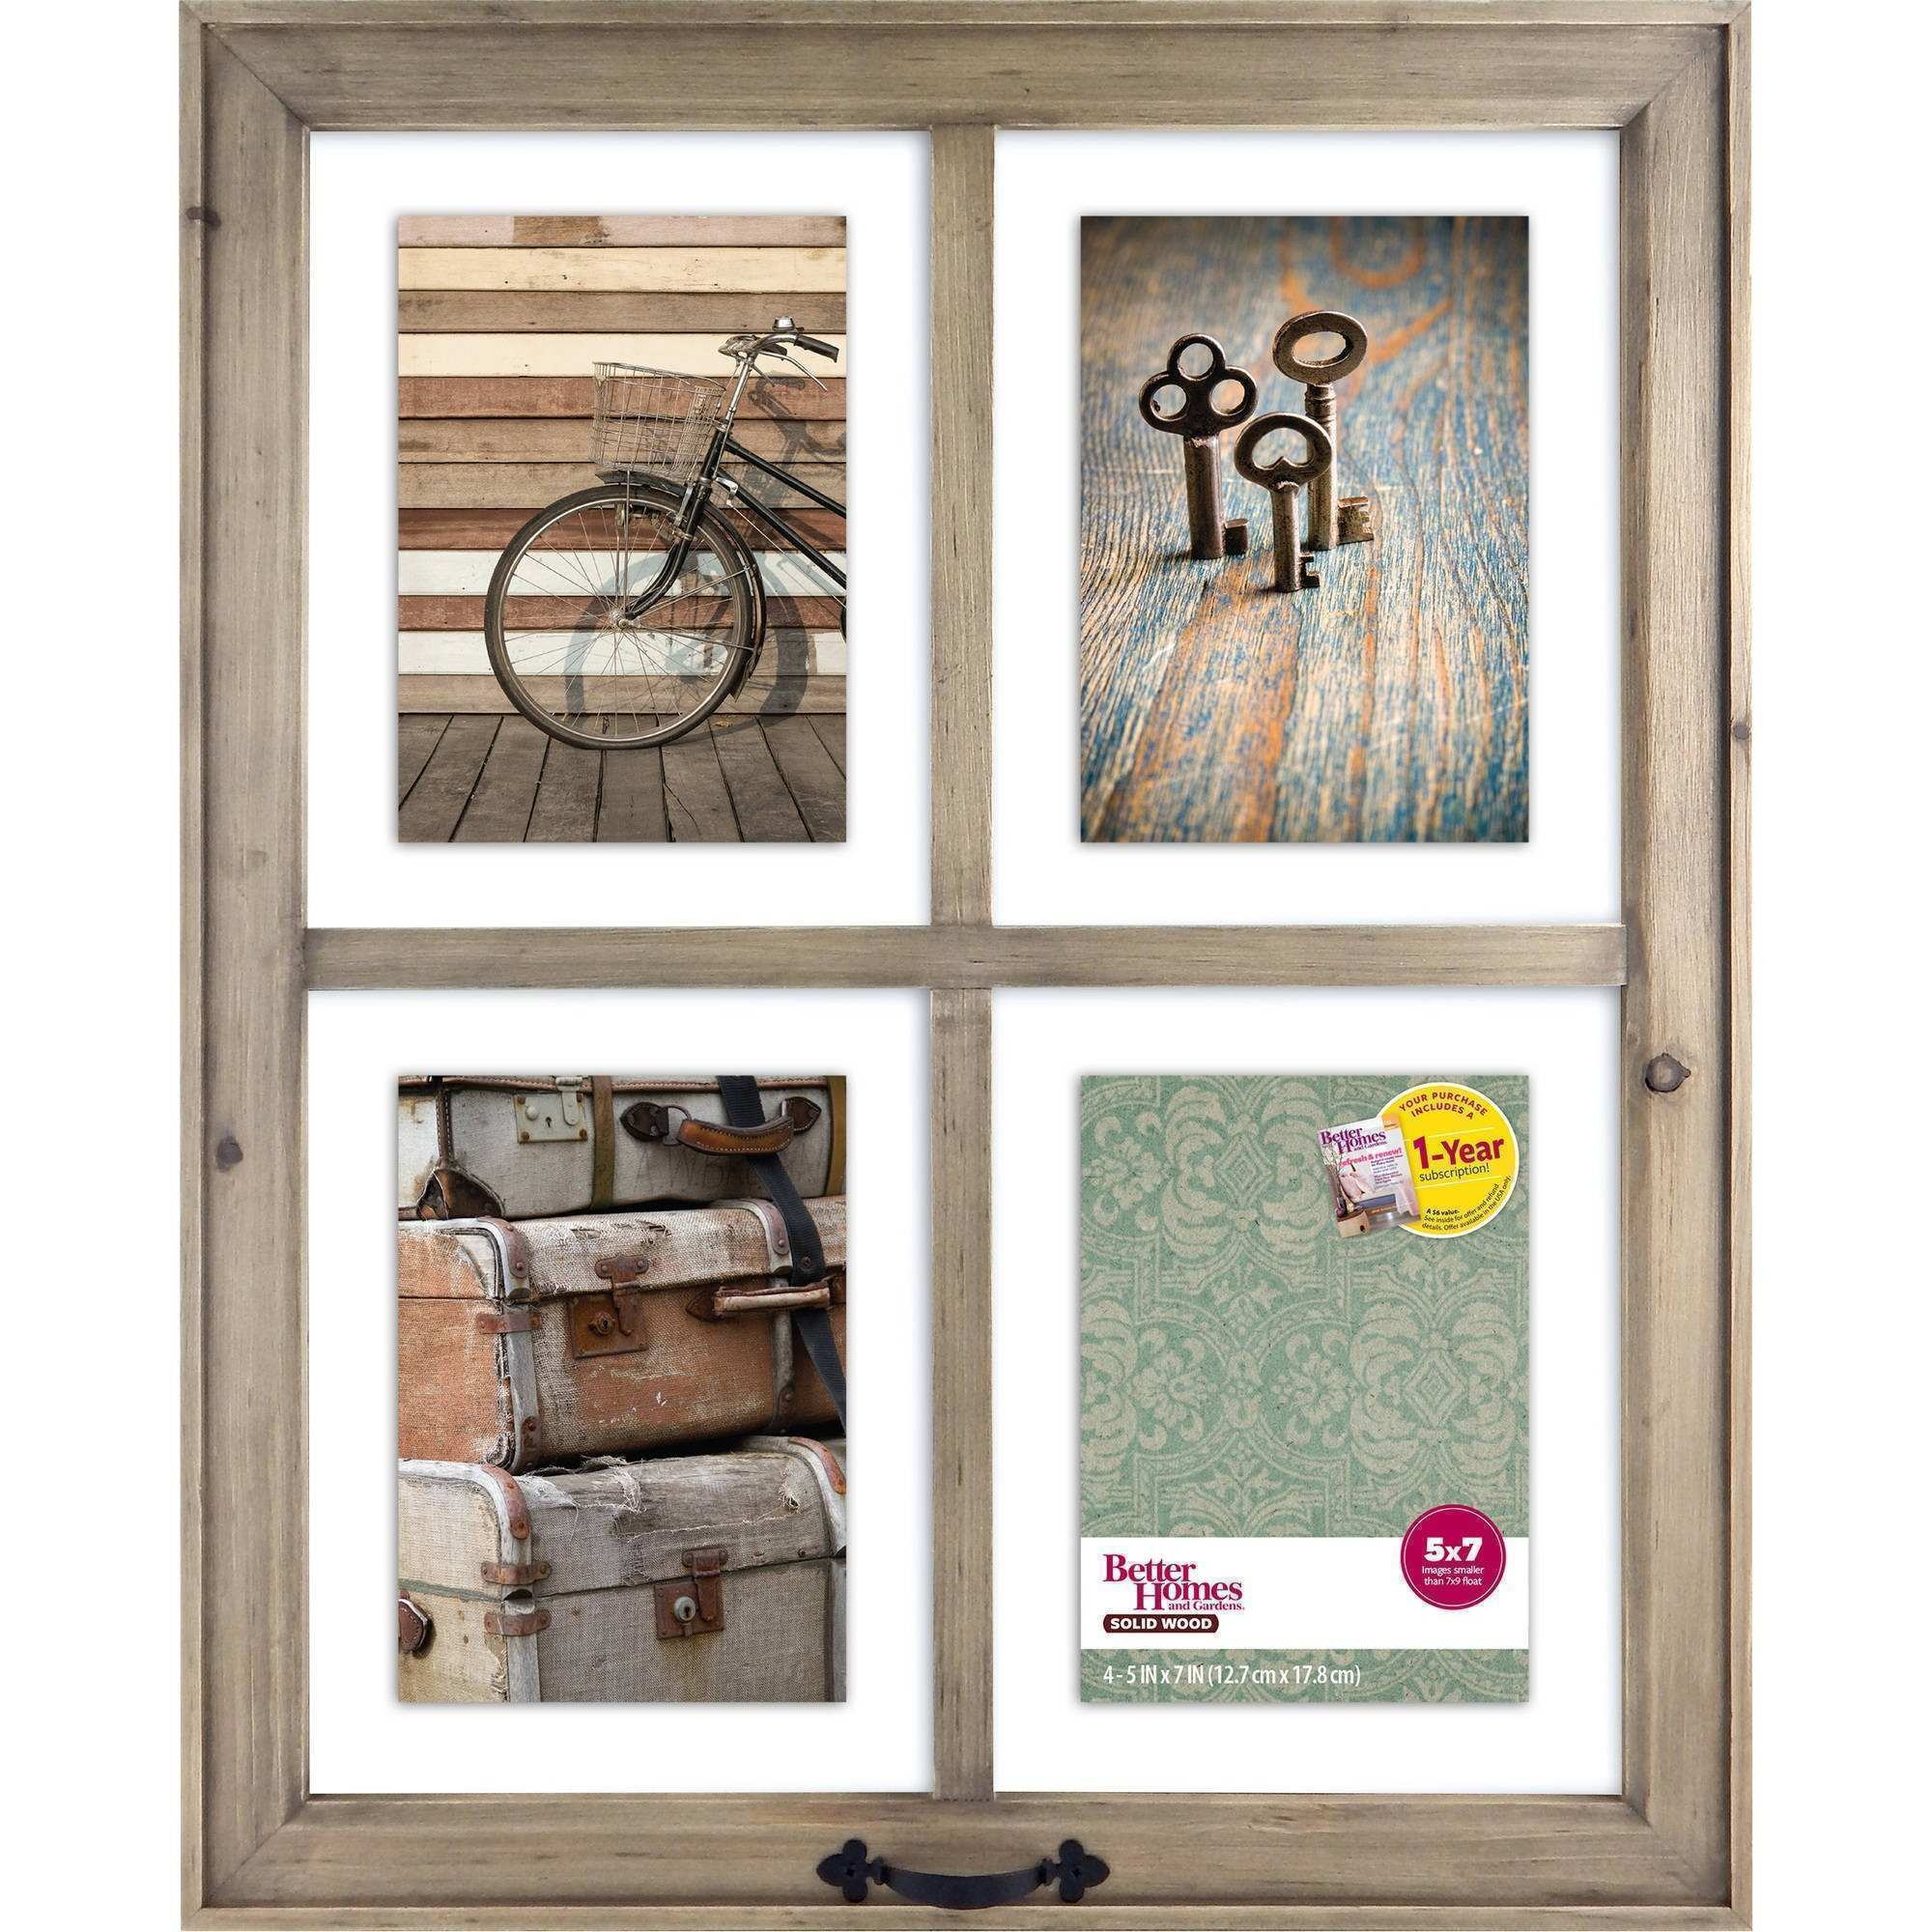 c14ah Home Design 4 Picture Frame i 0d Top